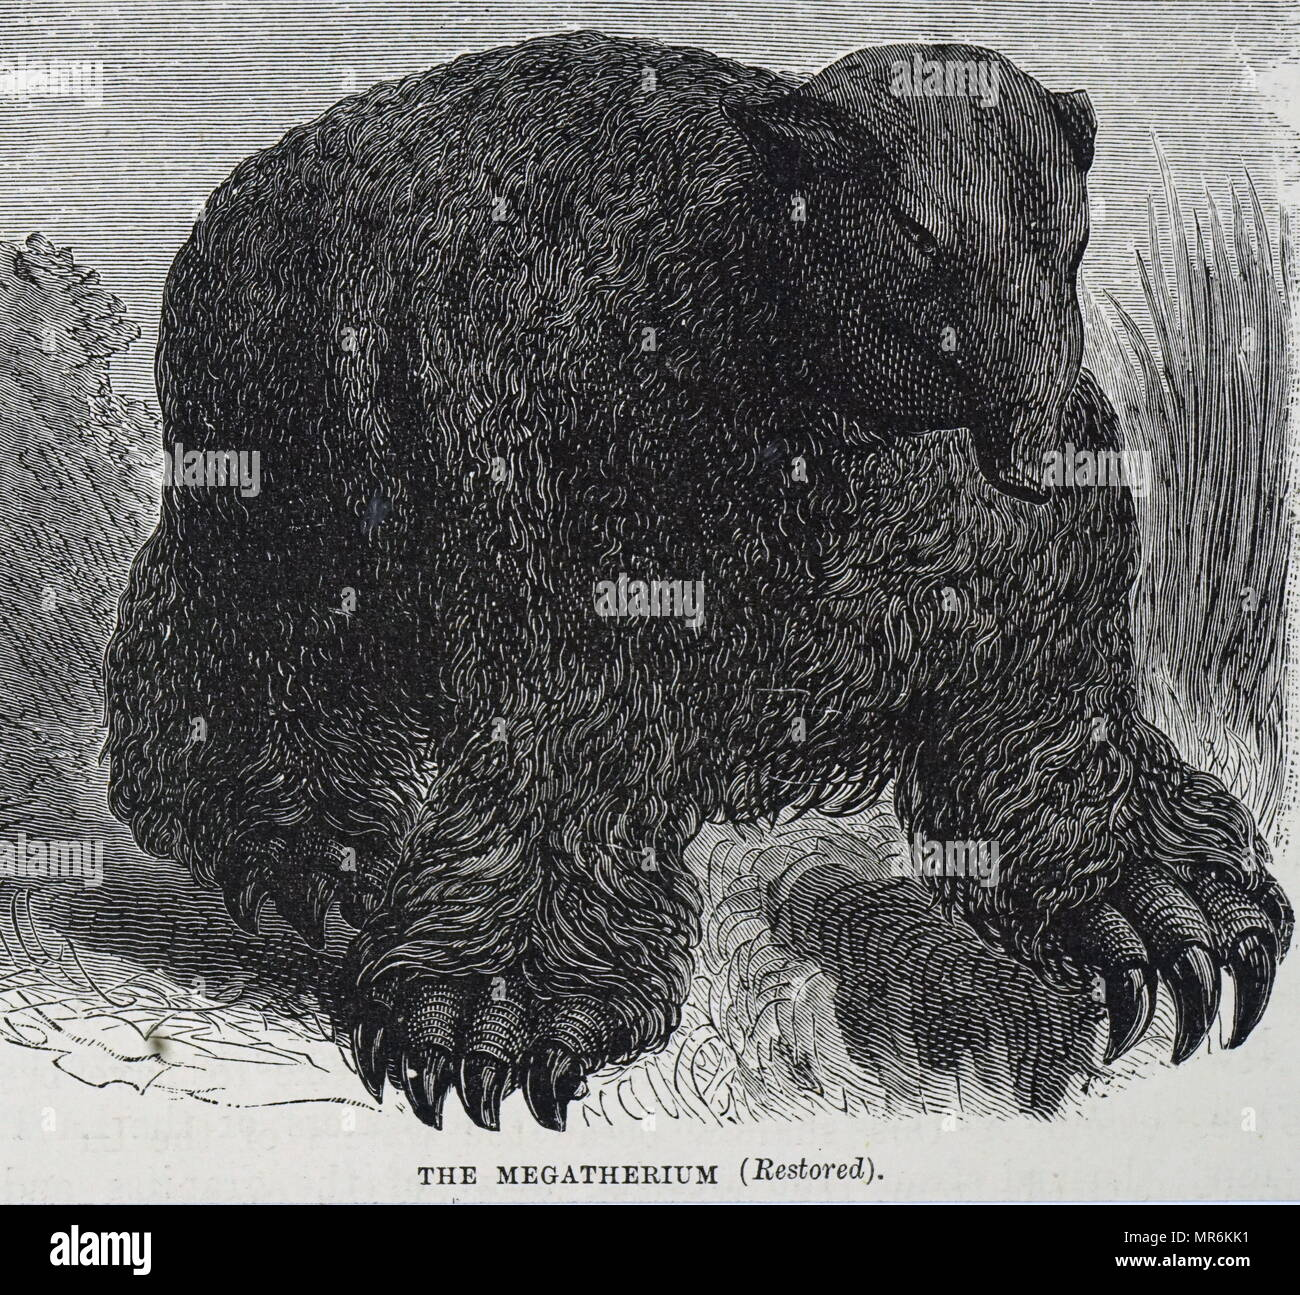 Engraving depicting a Megatherium,  a genus of elephant-sized ground sloths endemic to South America that lived from the Early Pliocene through the end of the Pleistocene. Dated 19th century - Stock Image